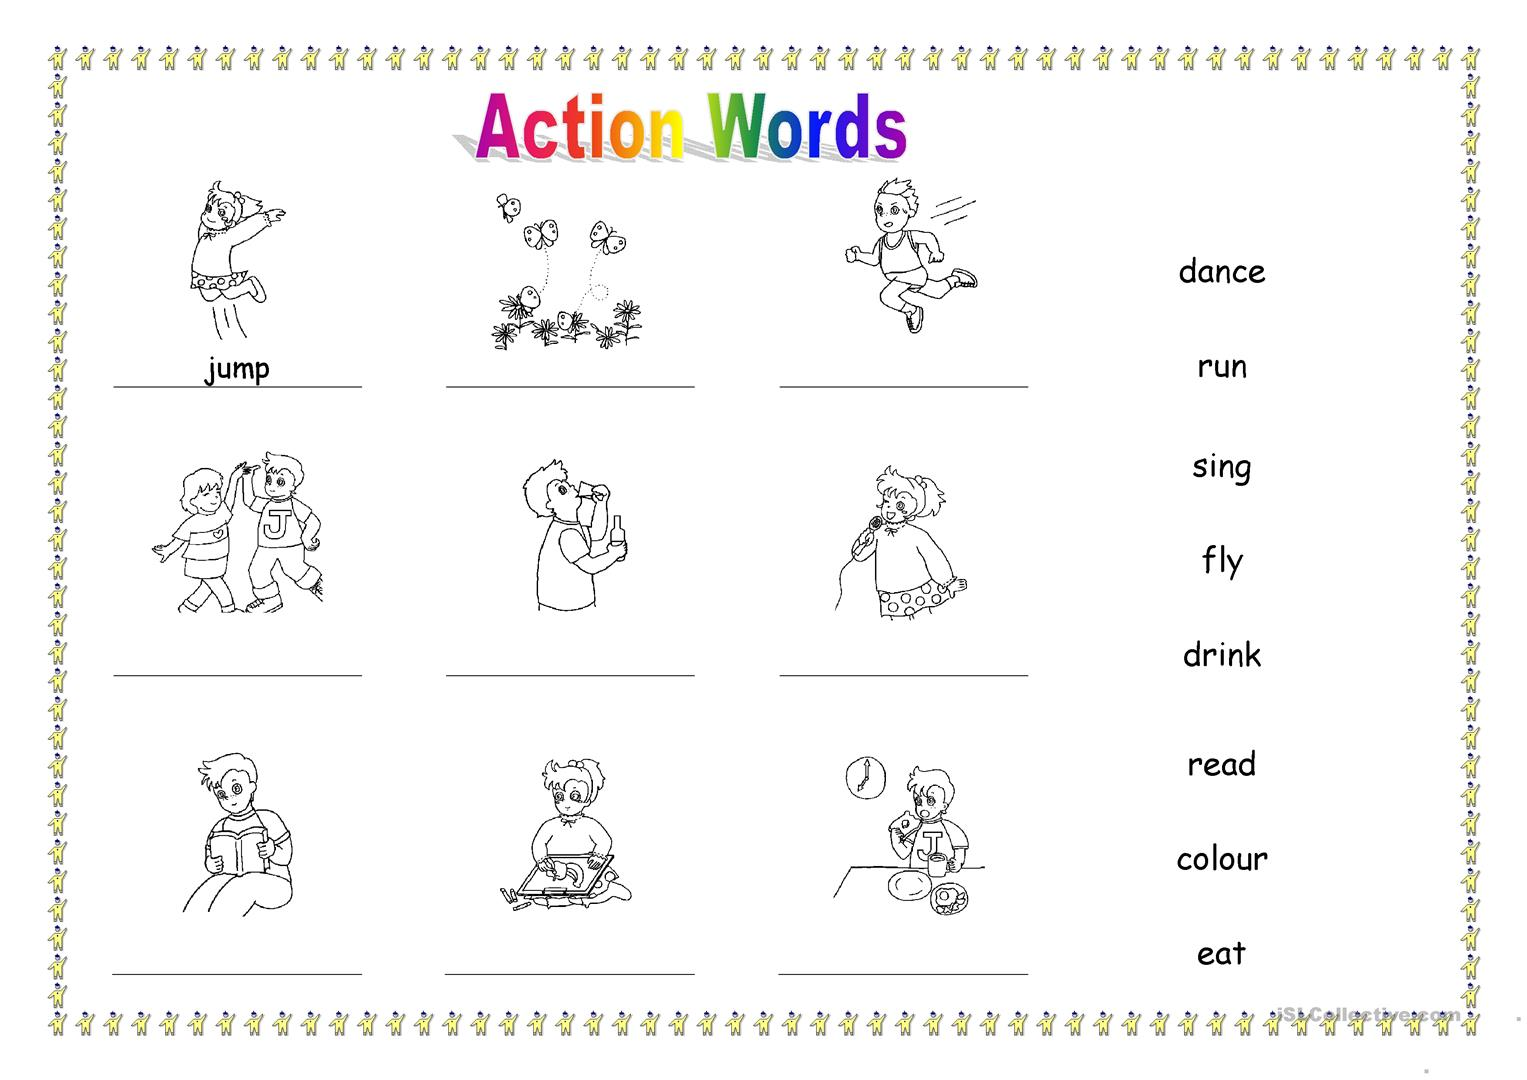 Action Words Pictures Worksheets